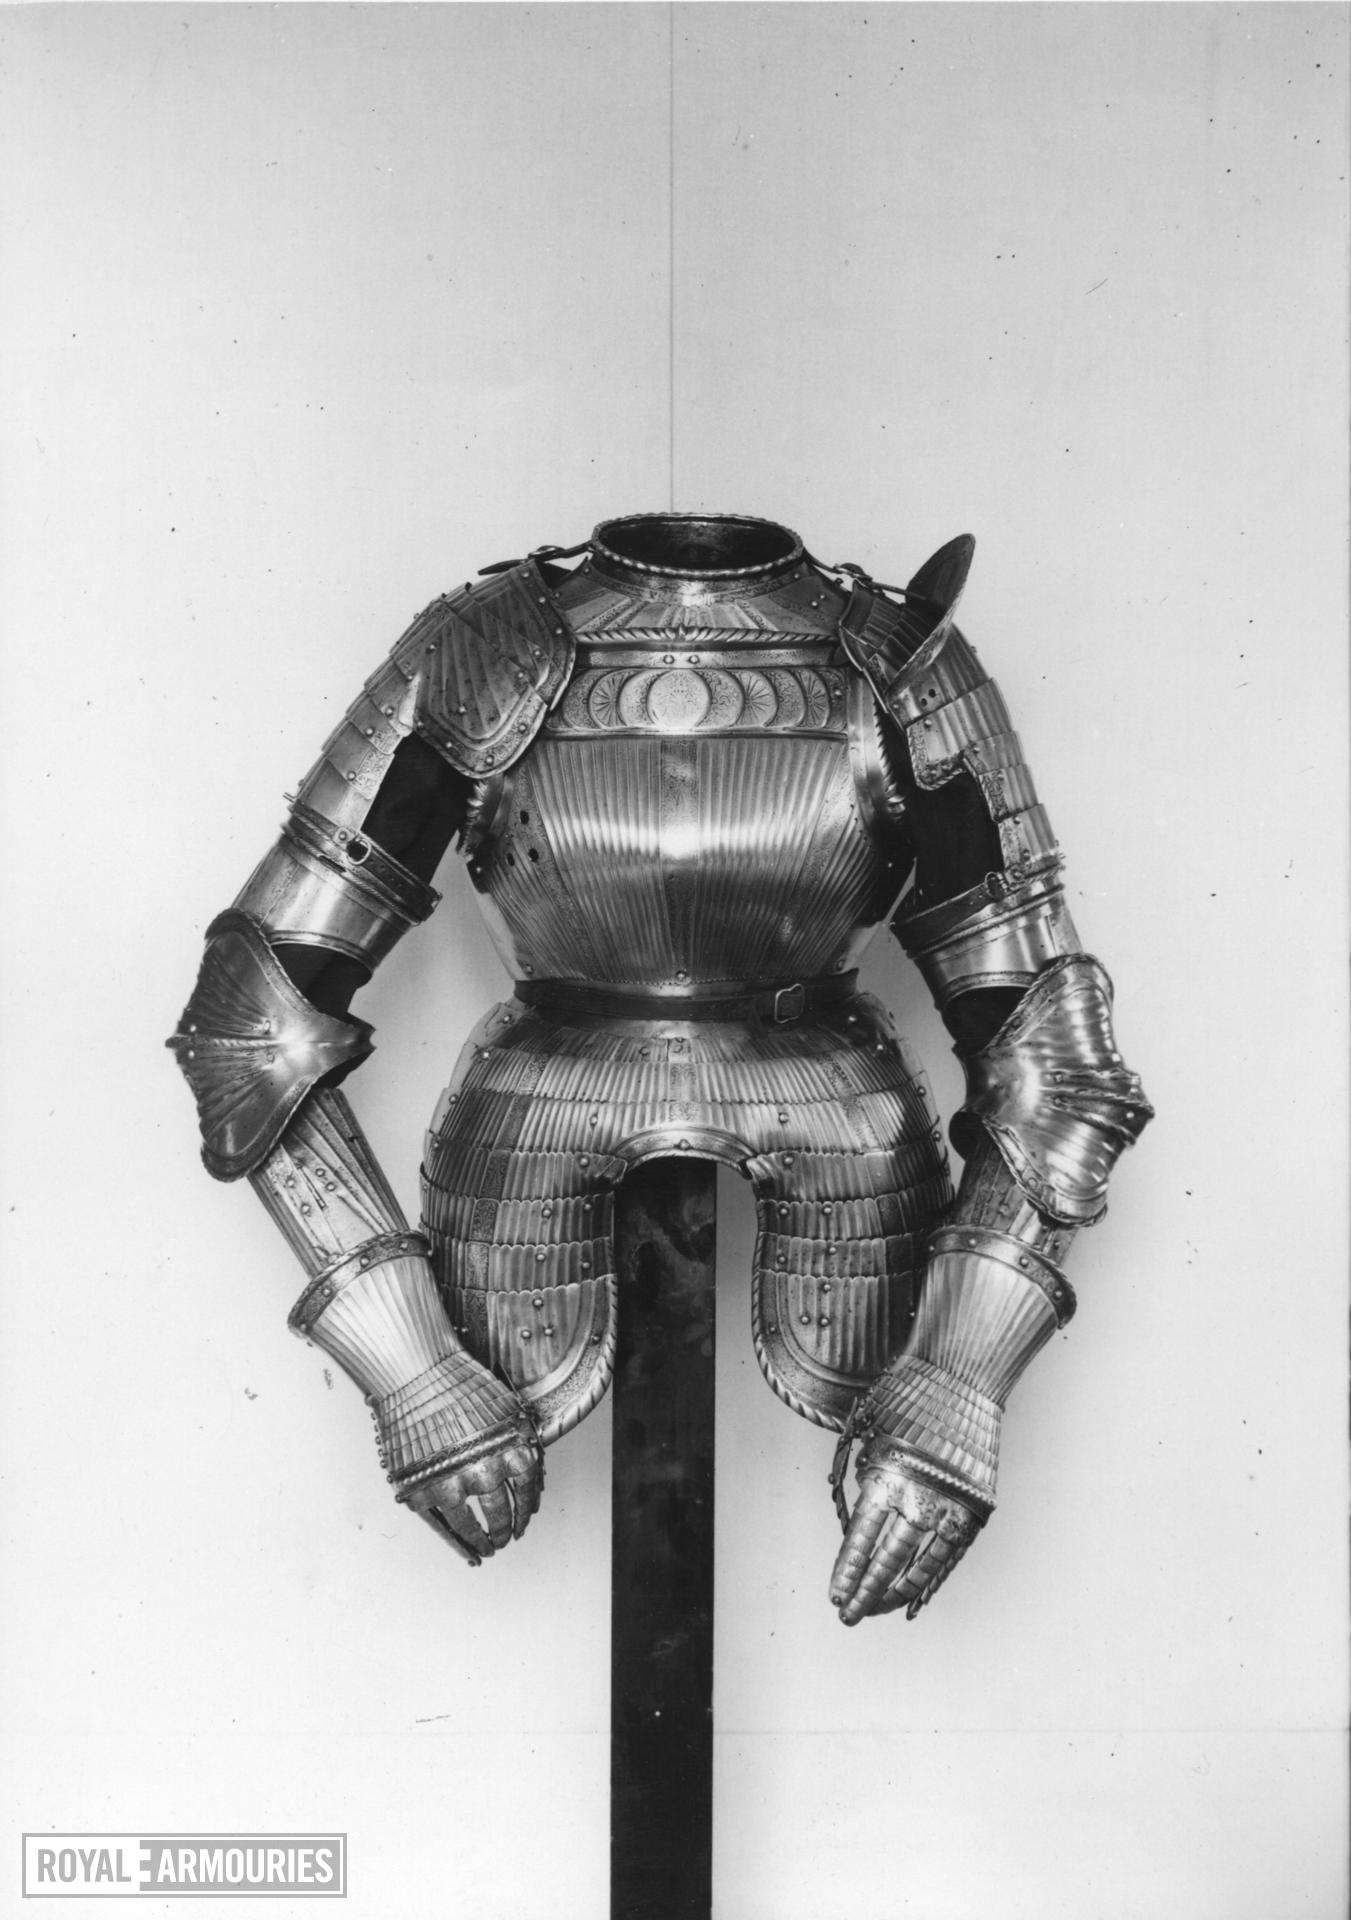 Composite armour in the Maximilian style